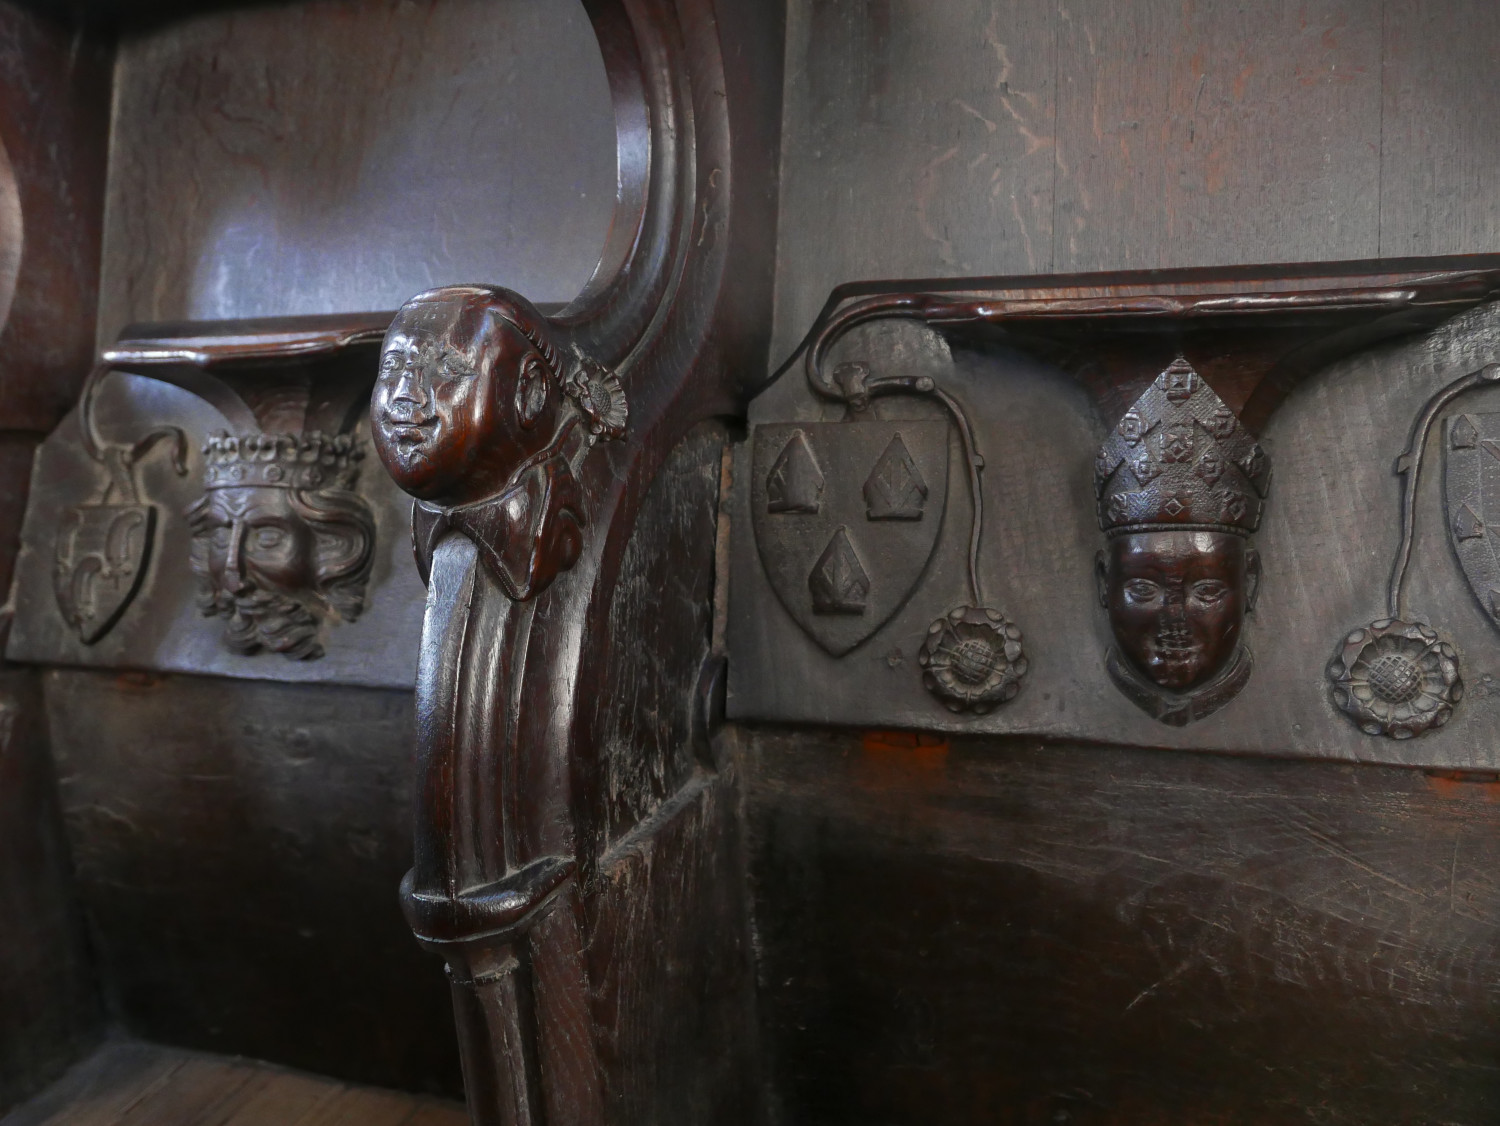 Photograph of the misericord seats in the chancel of King's Lynn Minster. The seats are folded to reveal intricate carvings of the heads of Edward the Black Prince and Bishop Henry Despencer.